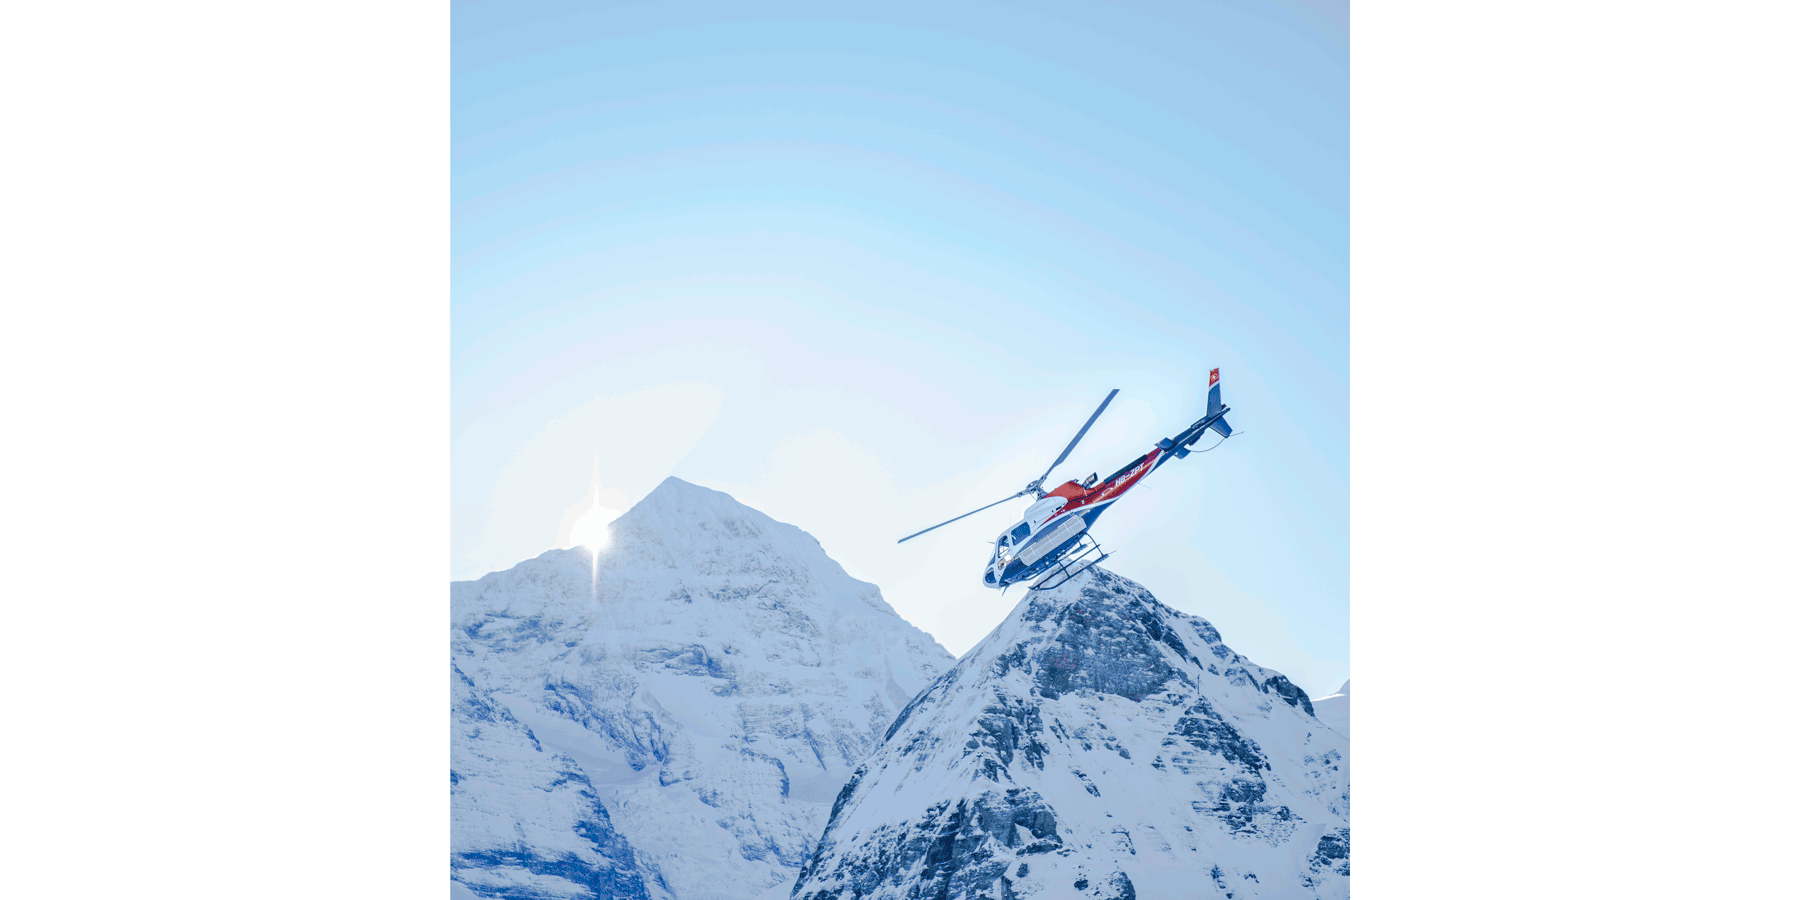 helicopter-rides-alpine